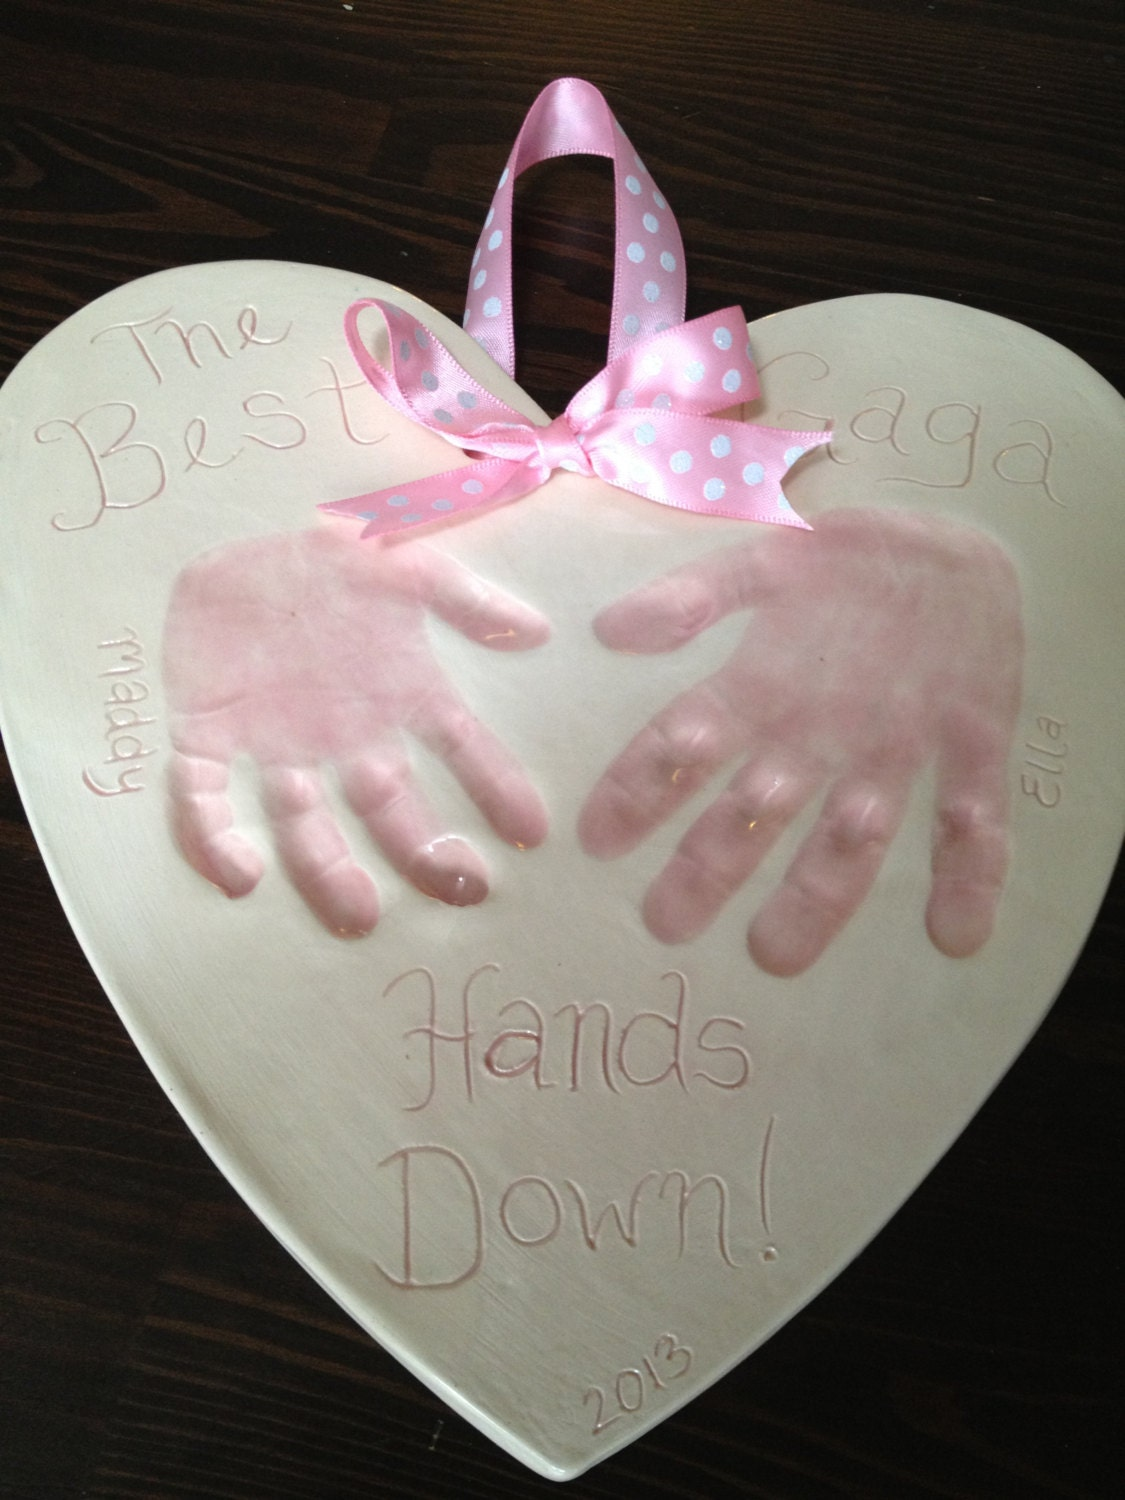 Best Grandparents Hands Down Keepsake - Handprint Gift